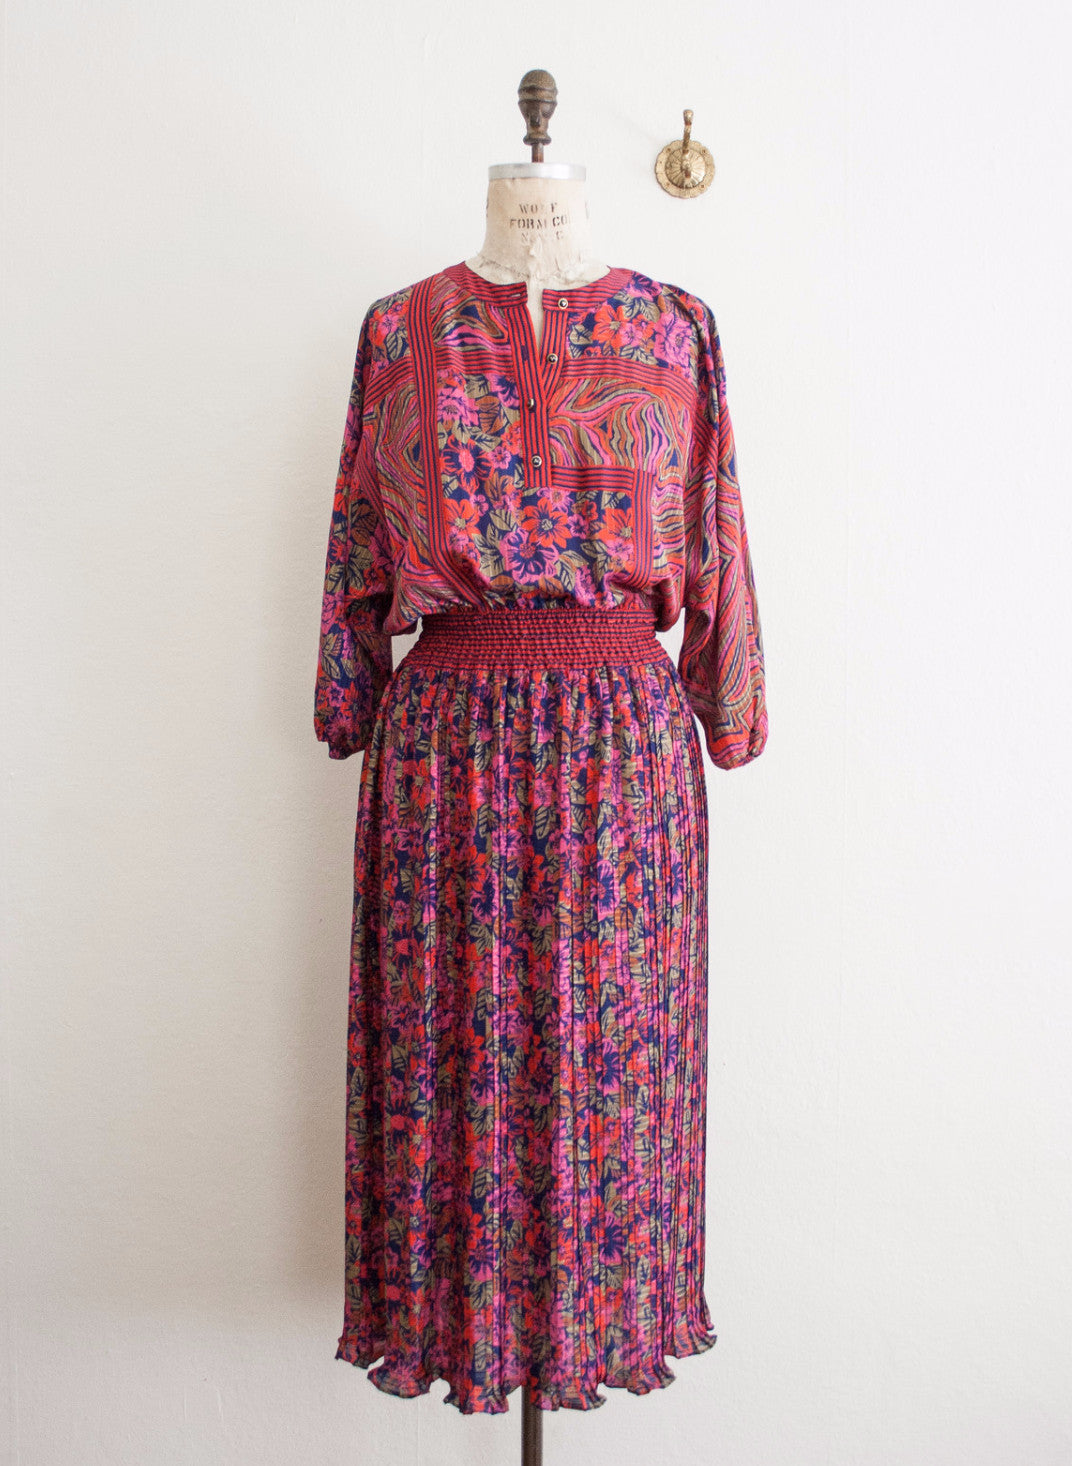 Diane Freis Magenta Mixed Print Dress